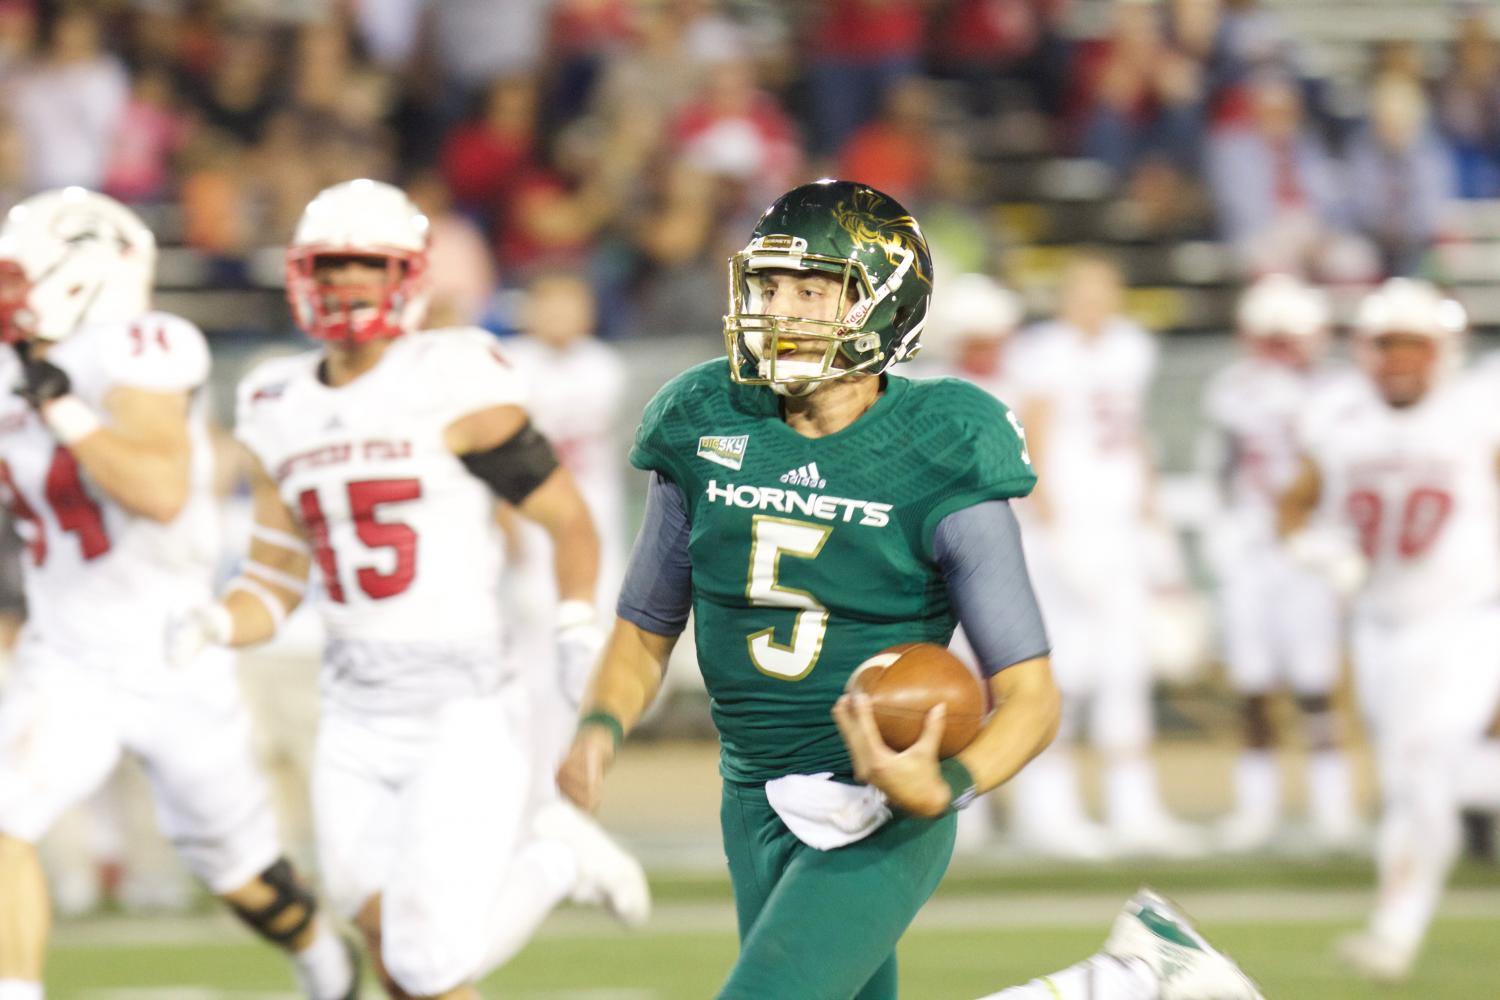 Sacramento State junior quarterback Kevin Thomson races down the field for a 59-yard rushing touchdown against Southern Utah Sept. 23 at Hornet Stadium. Thomson finished with 14 carries for 149 yards and four touchdowns.